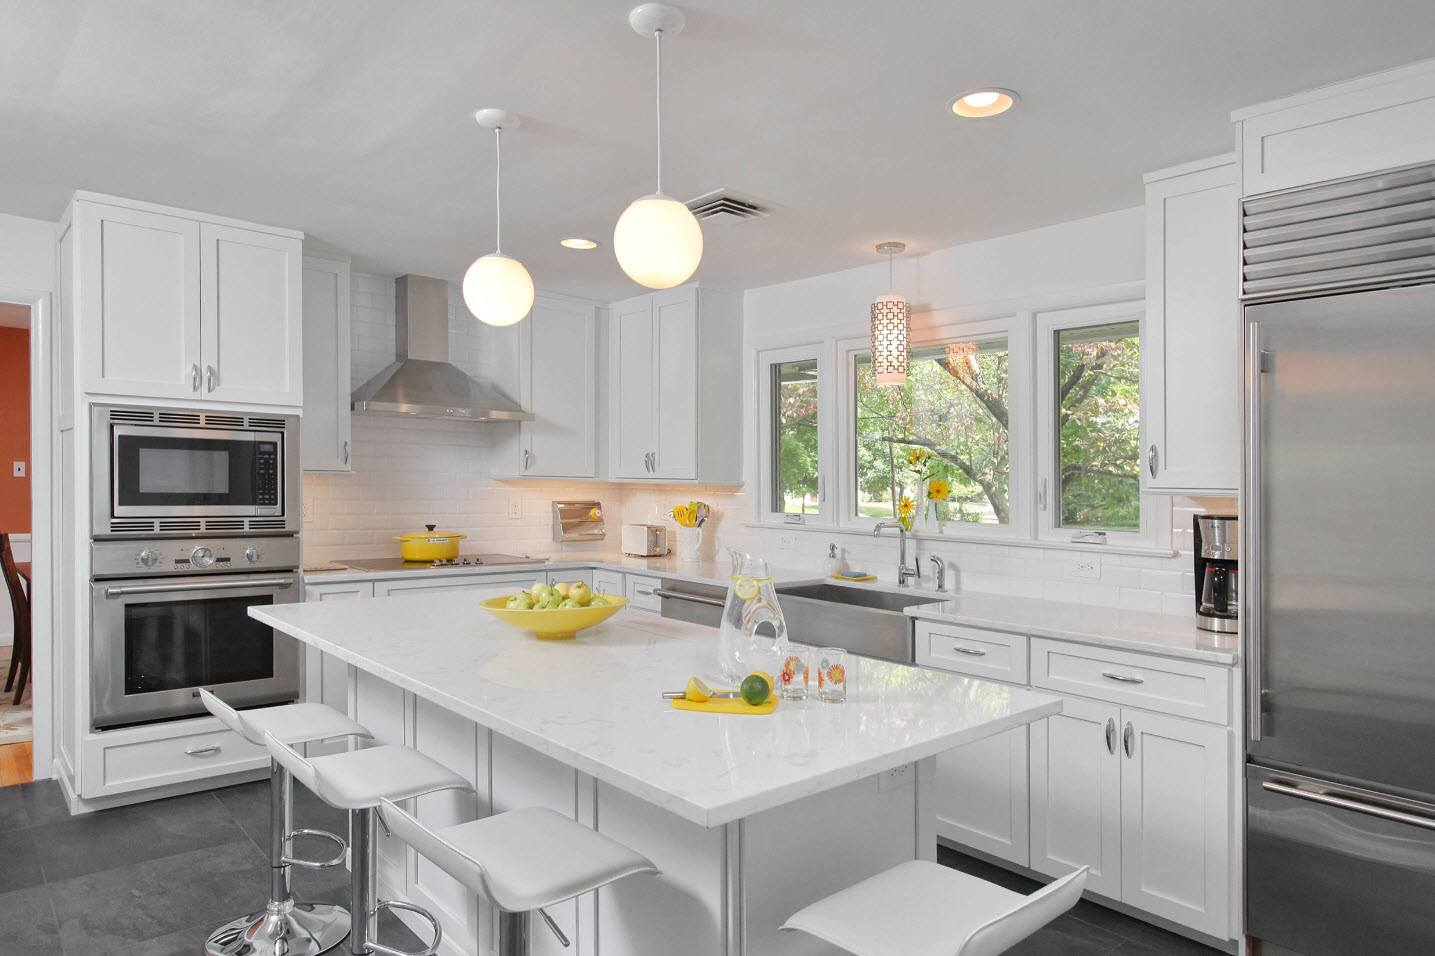 Typical though cozy kitchen interior in white coored classic style